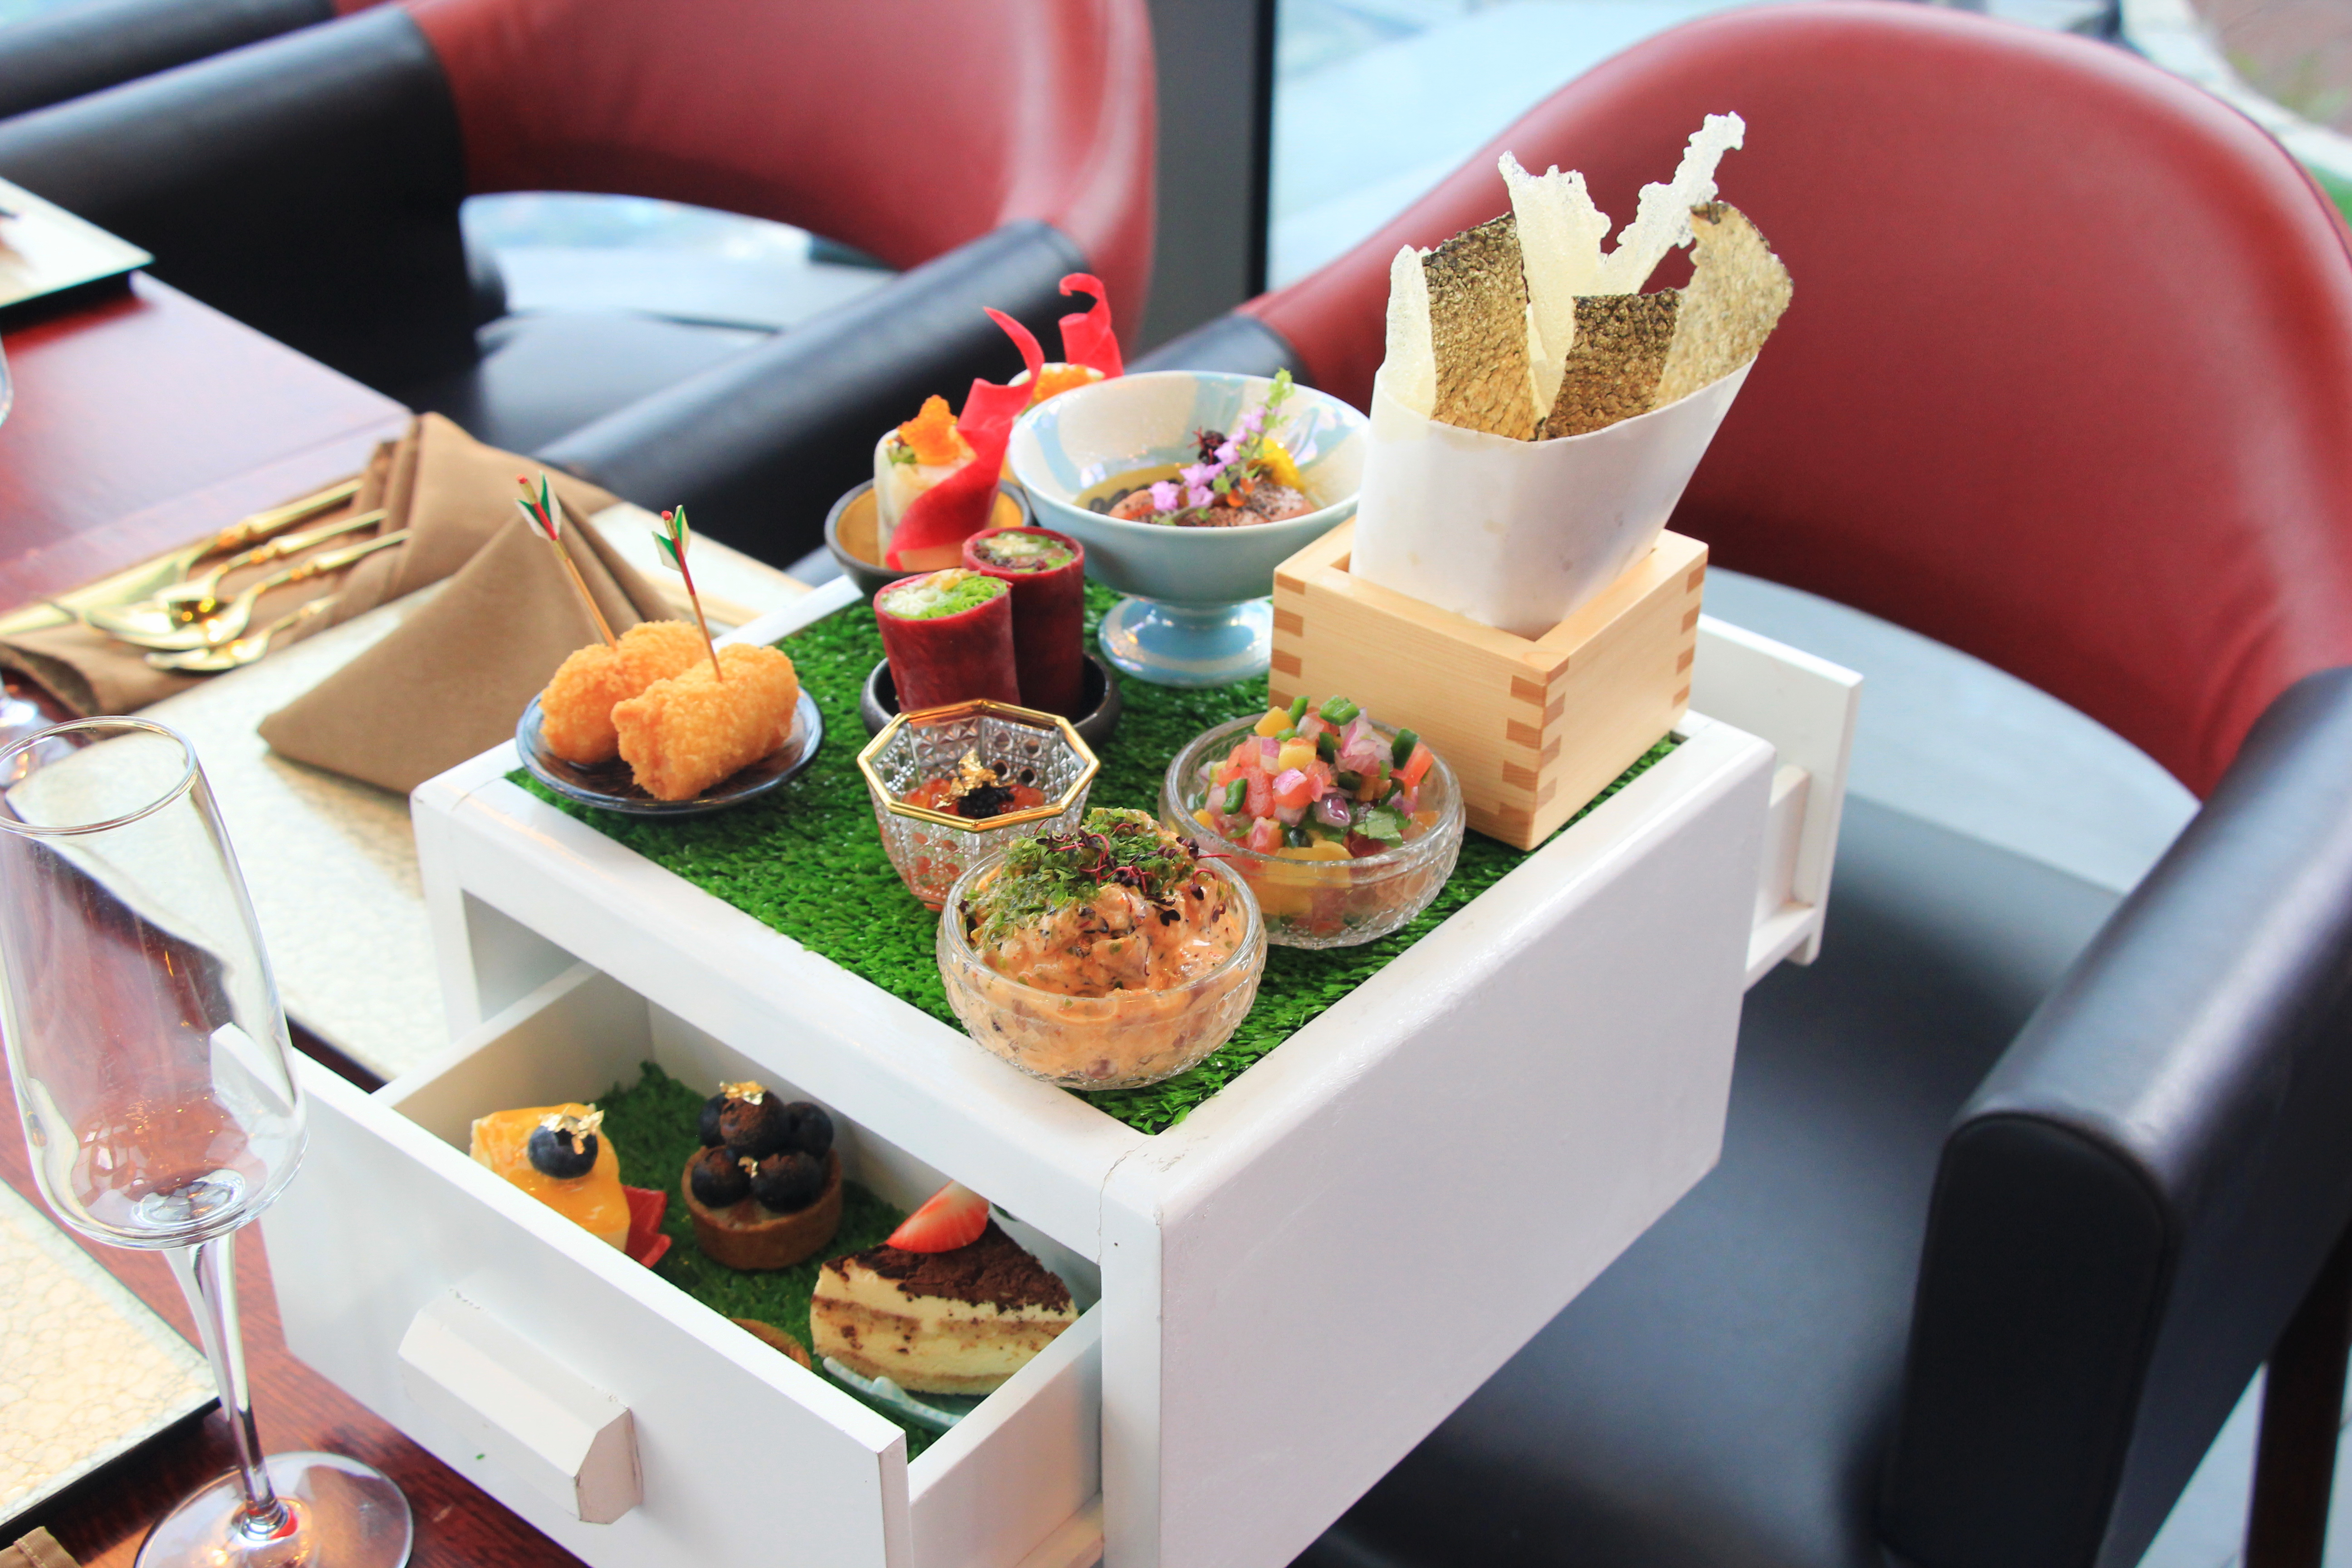 High Tea in The Sky: An afternoon tea in Vietnam's tallest building